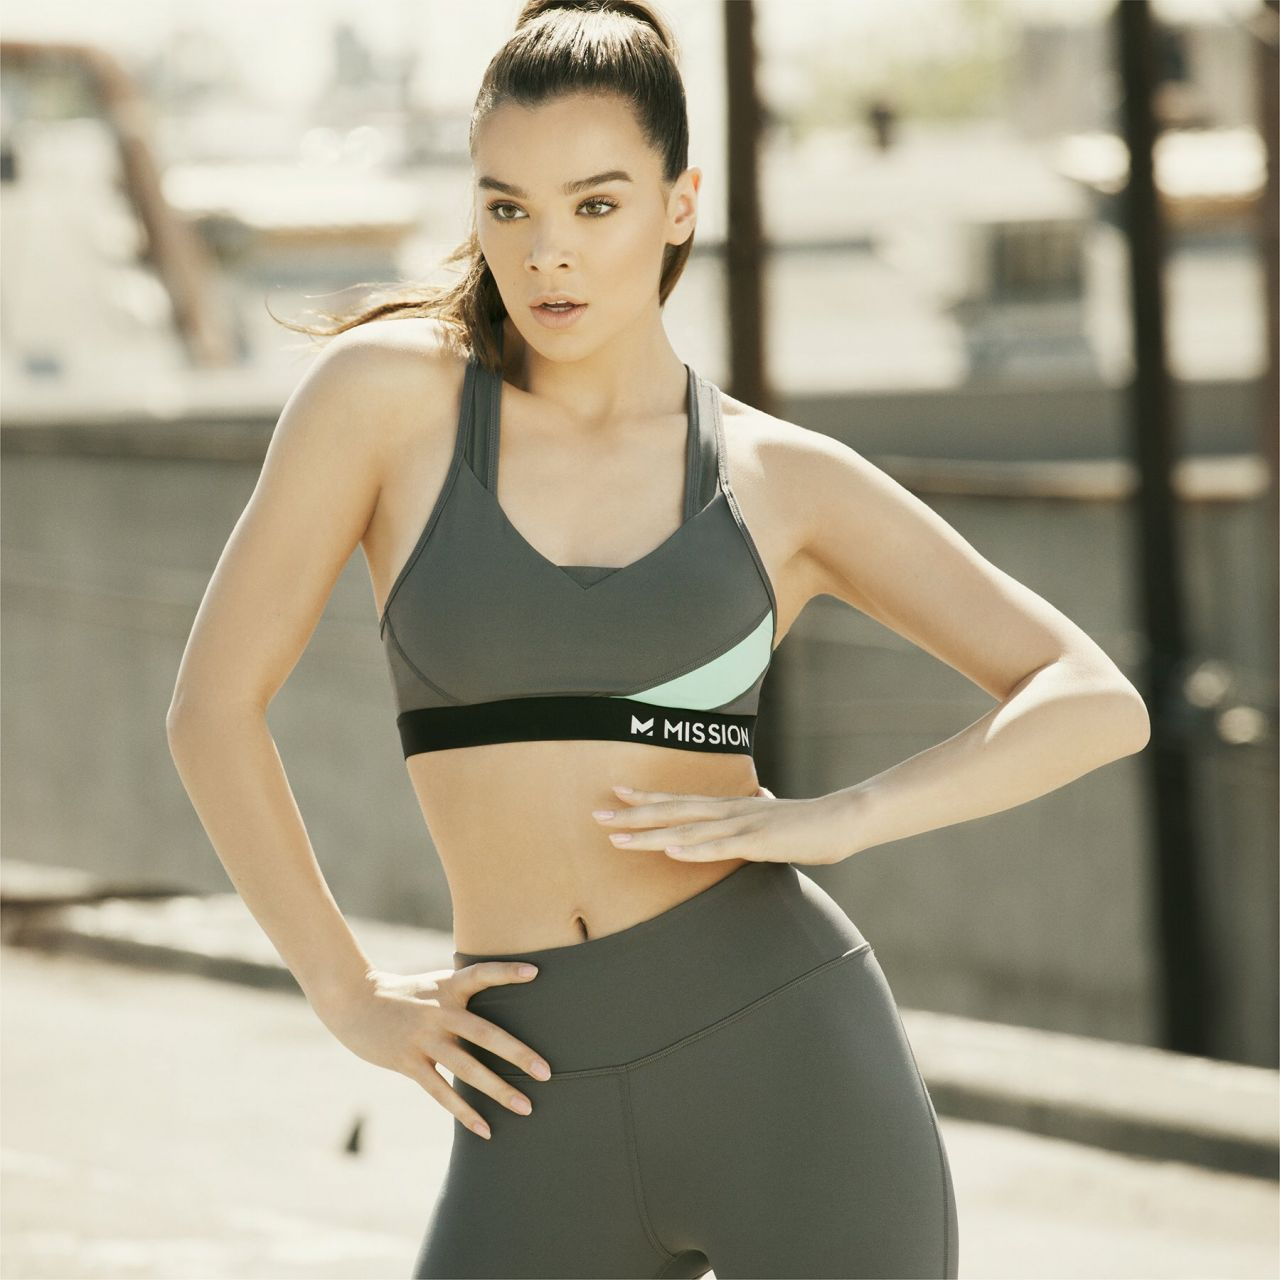 Hailee Steinfeld - Mission Activewear Line Campaign 2017-9898